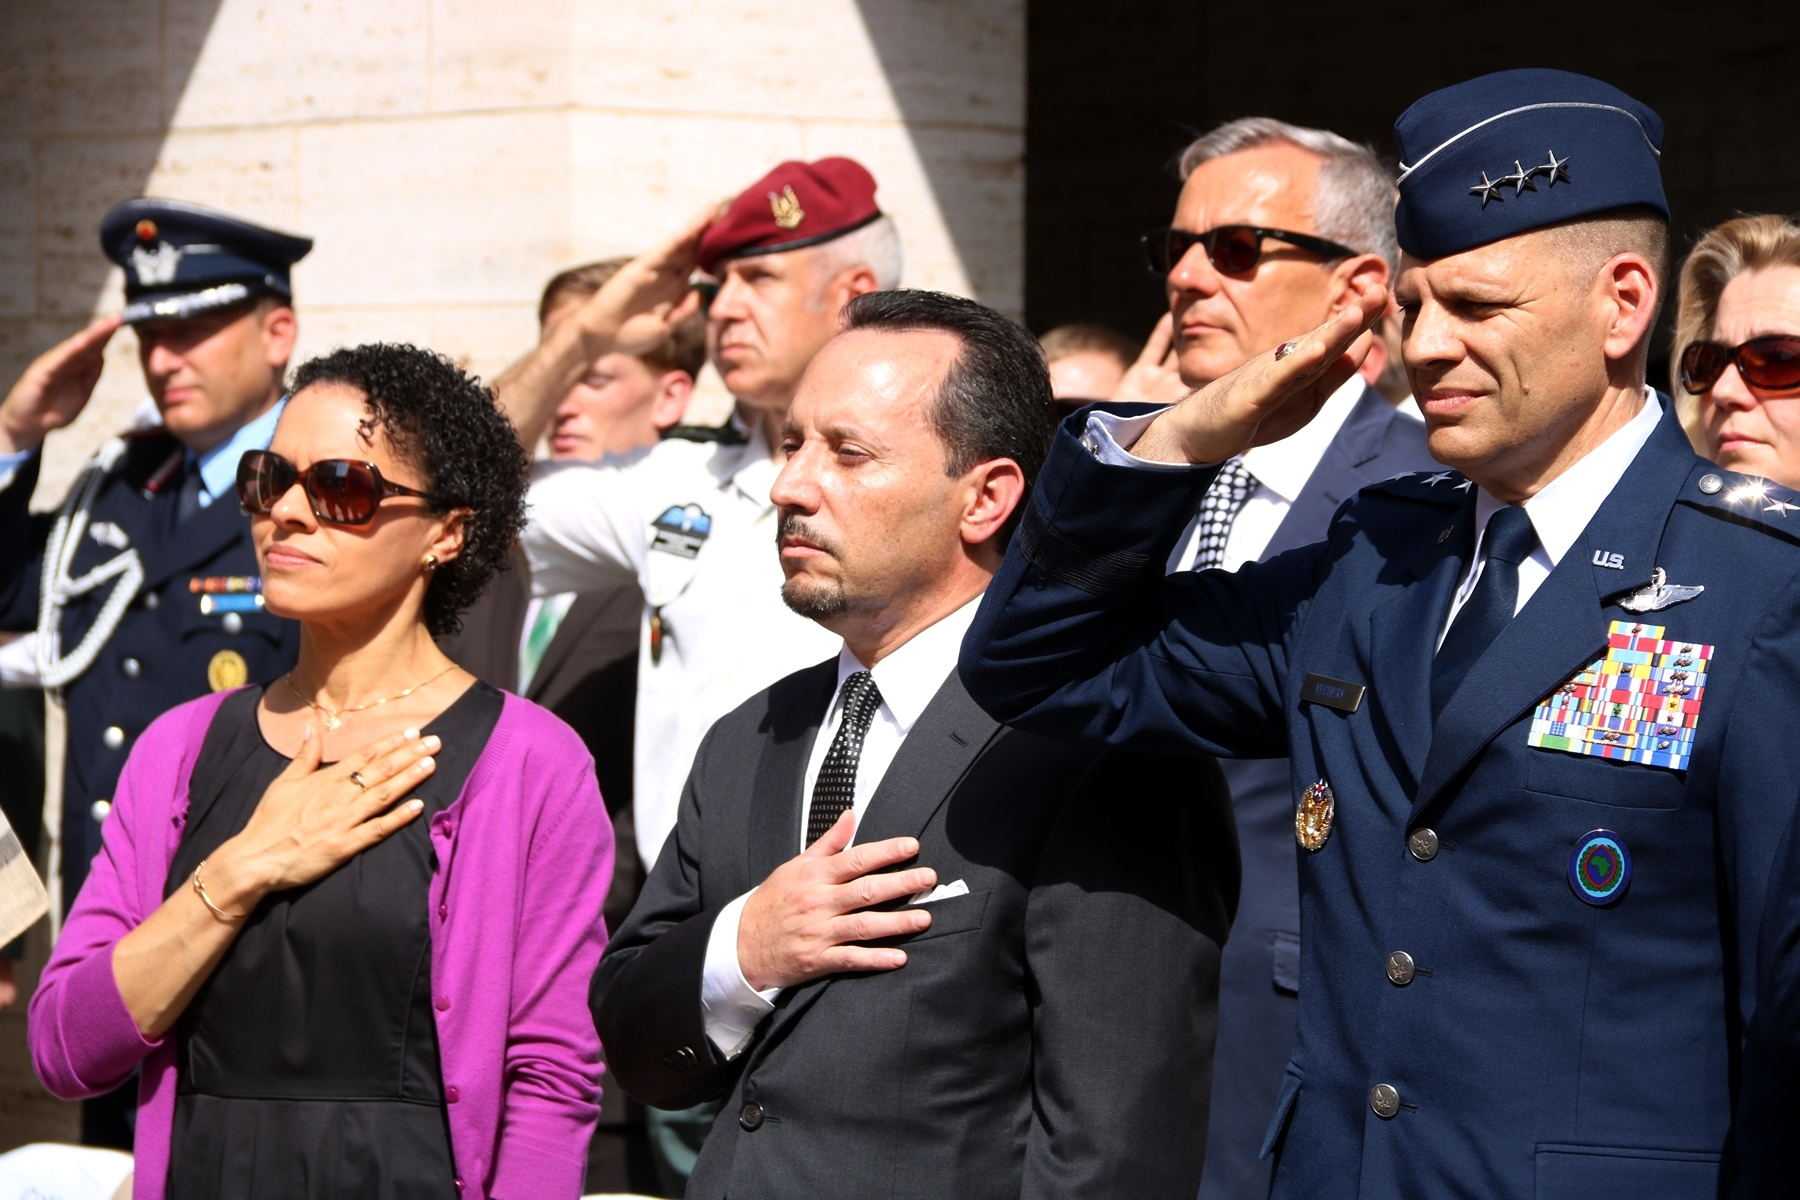 U.S. Air Force Lt. Gen. James C. Vechery, Deputy to the Commander for Military Operations, U.S. Africa Command (right), and Amb. Daniel Rubinstein, U.S. Ambassador to Tunisia, salute the military honor guard as it passes in formation as part of the Memorial Day ceremony in Carthage, Tunisia, May 28, 2018. (Photo by Zouhaier SFAXI, U.S. Embassy Tunis)